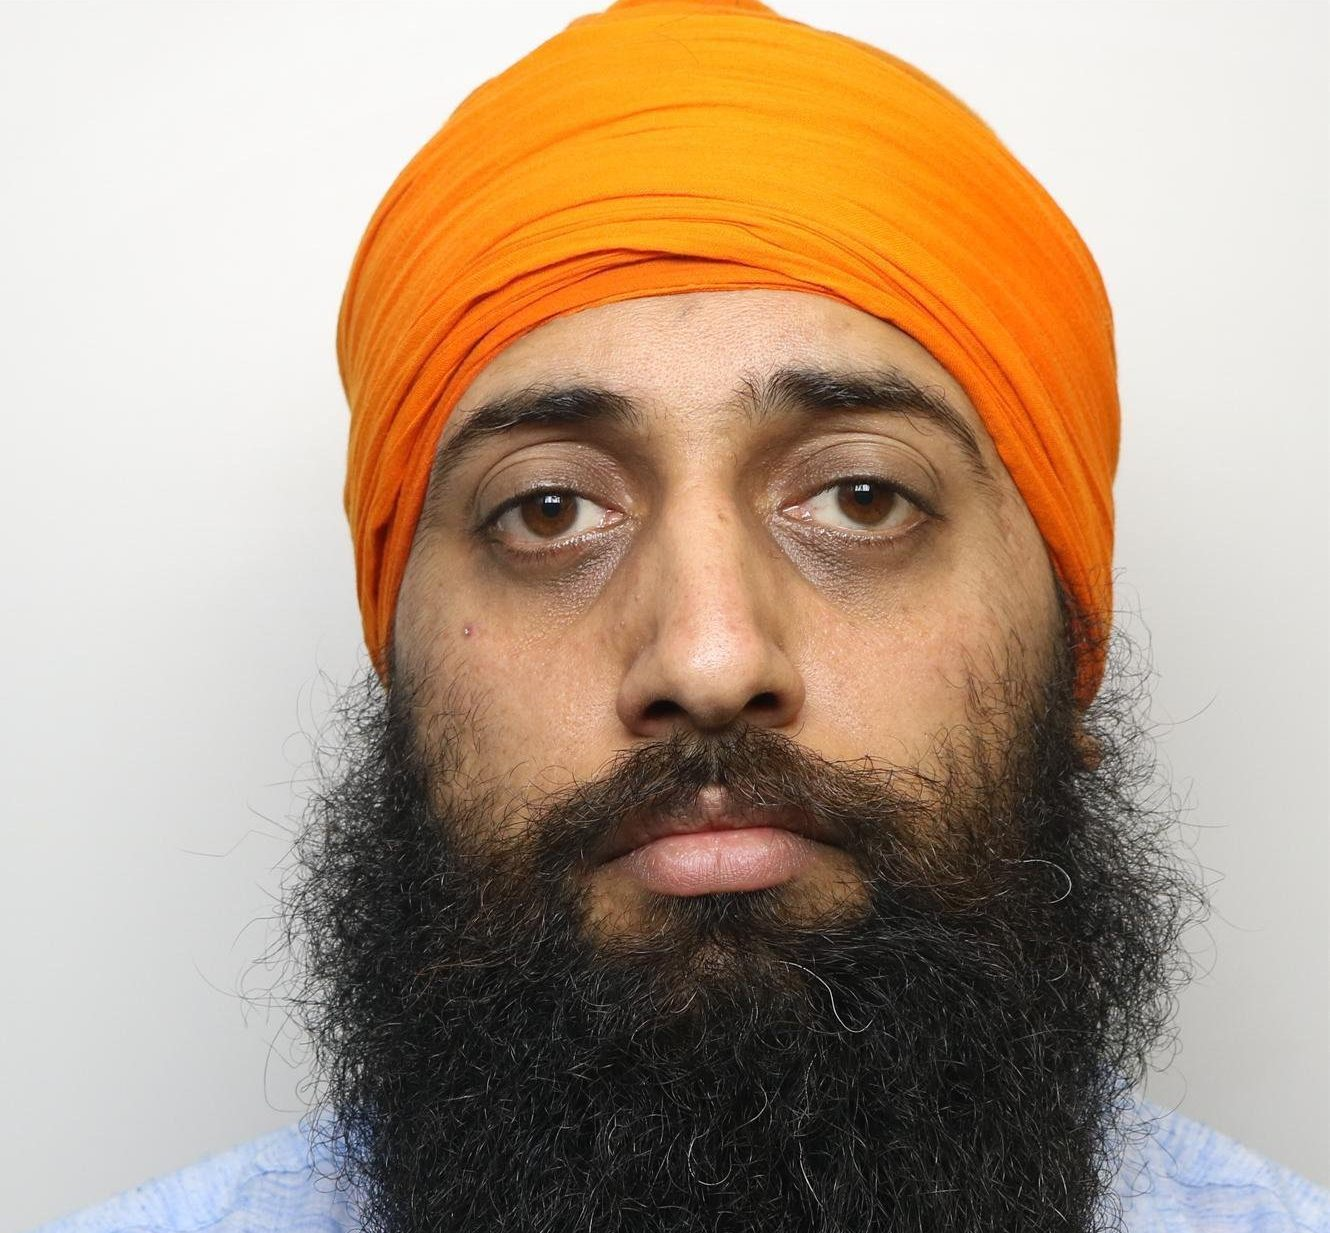 "Amere Singh Dhaliwal is shown in a police mugshot, in connection with a large scale rape and sexual abuse trial which sees 16 asian men from the Kirklees area jailed for a total of 221 years, at Leeds Crown Court, West Yorks., October 19 2018. See SWNS story SWLEabuse: A 16-strong gang of Asian men have been jailed for 221 years for drugging and sexually abusing vulnerable girls as young as eleven years old. The perverted group of men sexually abused the young victims, including two who had learning difficulties, between 2004 and 2011. The ""cynical"" exploitation of the girls - between just 11 and 17 years old - included plying them with alcohol and drugging them before carrying out horrific sexual assaults."